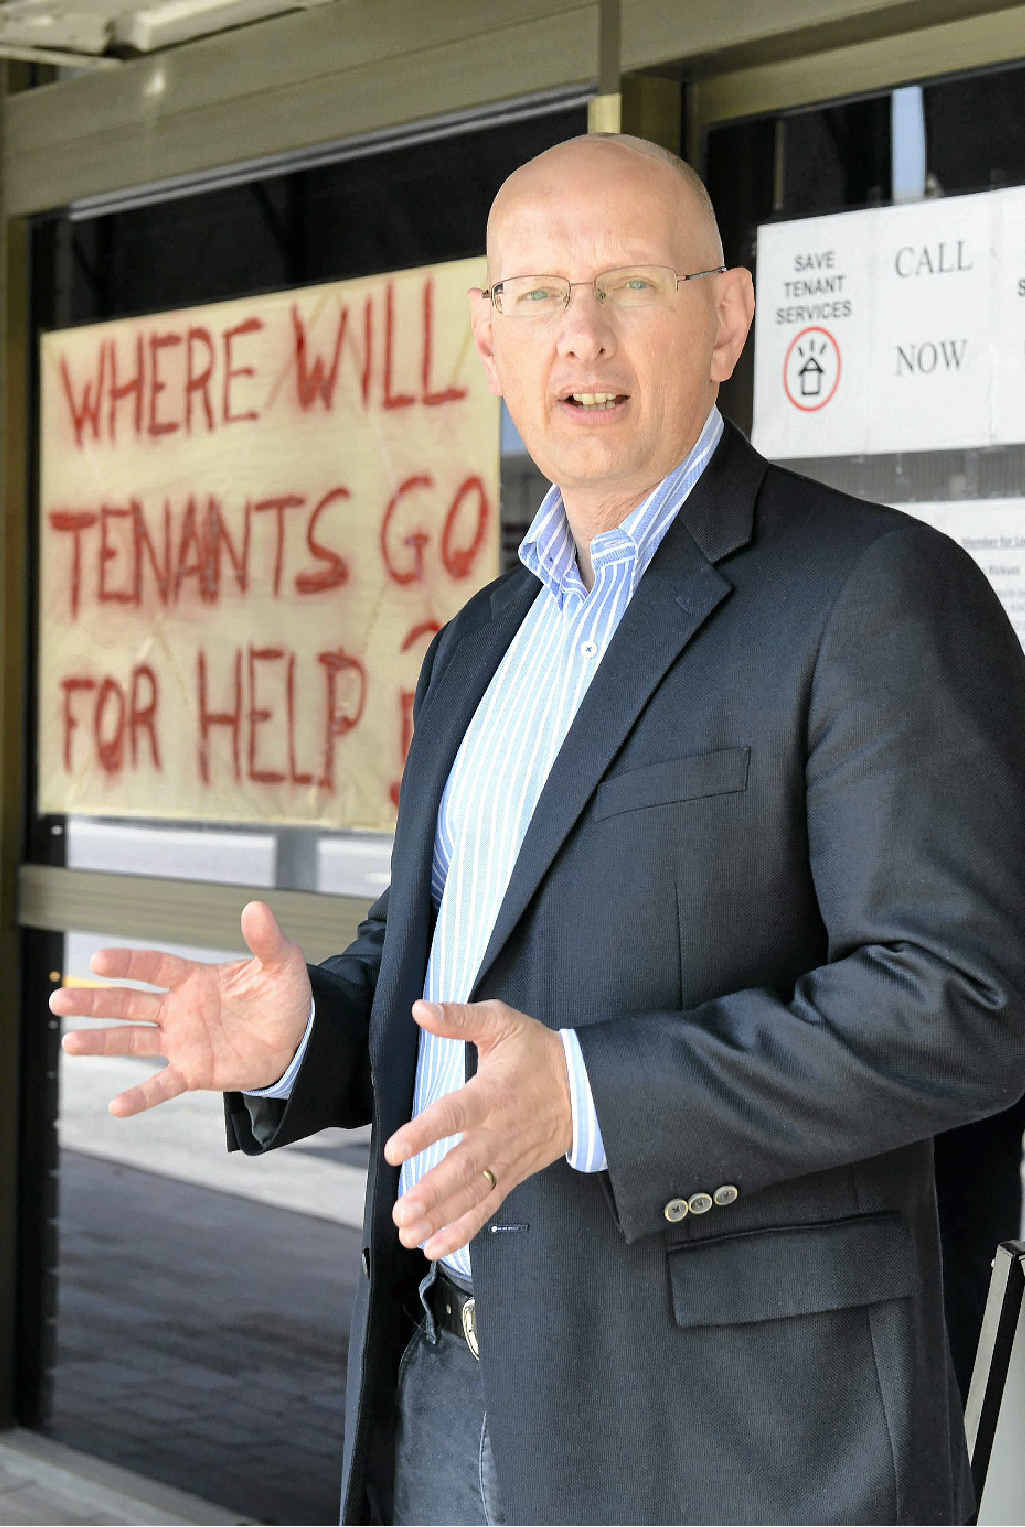 ANGRY: Member for Blair Shayne Neumann has slammed the LNP for closing the Ipswich Tenant Advice and Advocacy Service.